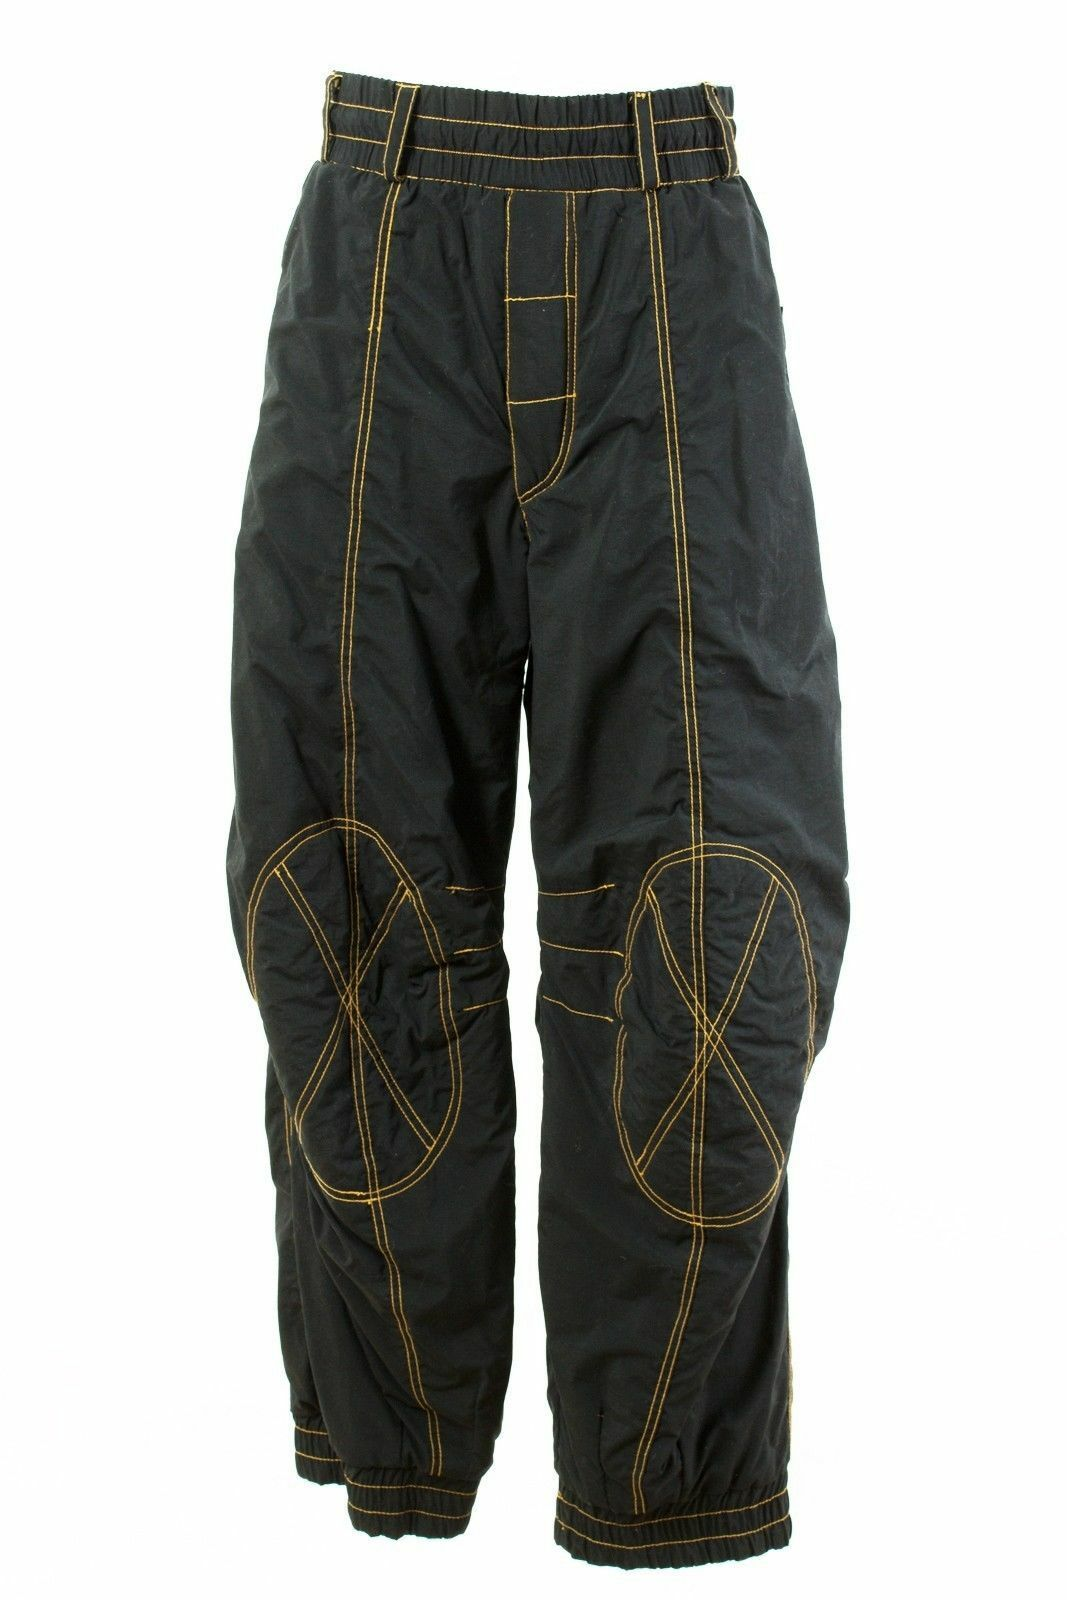 FIRE AND ICE Skihose Gr. L   52 Schneehose Thermohose Winterhose Snow Pants